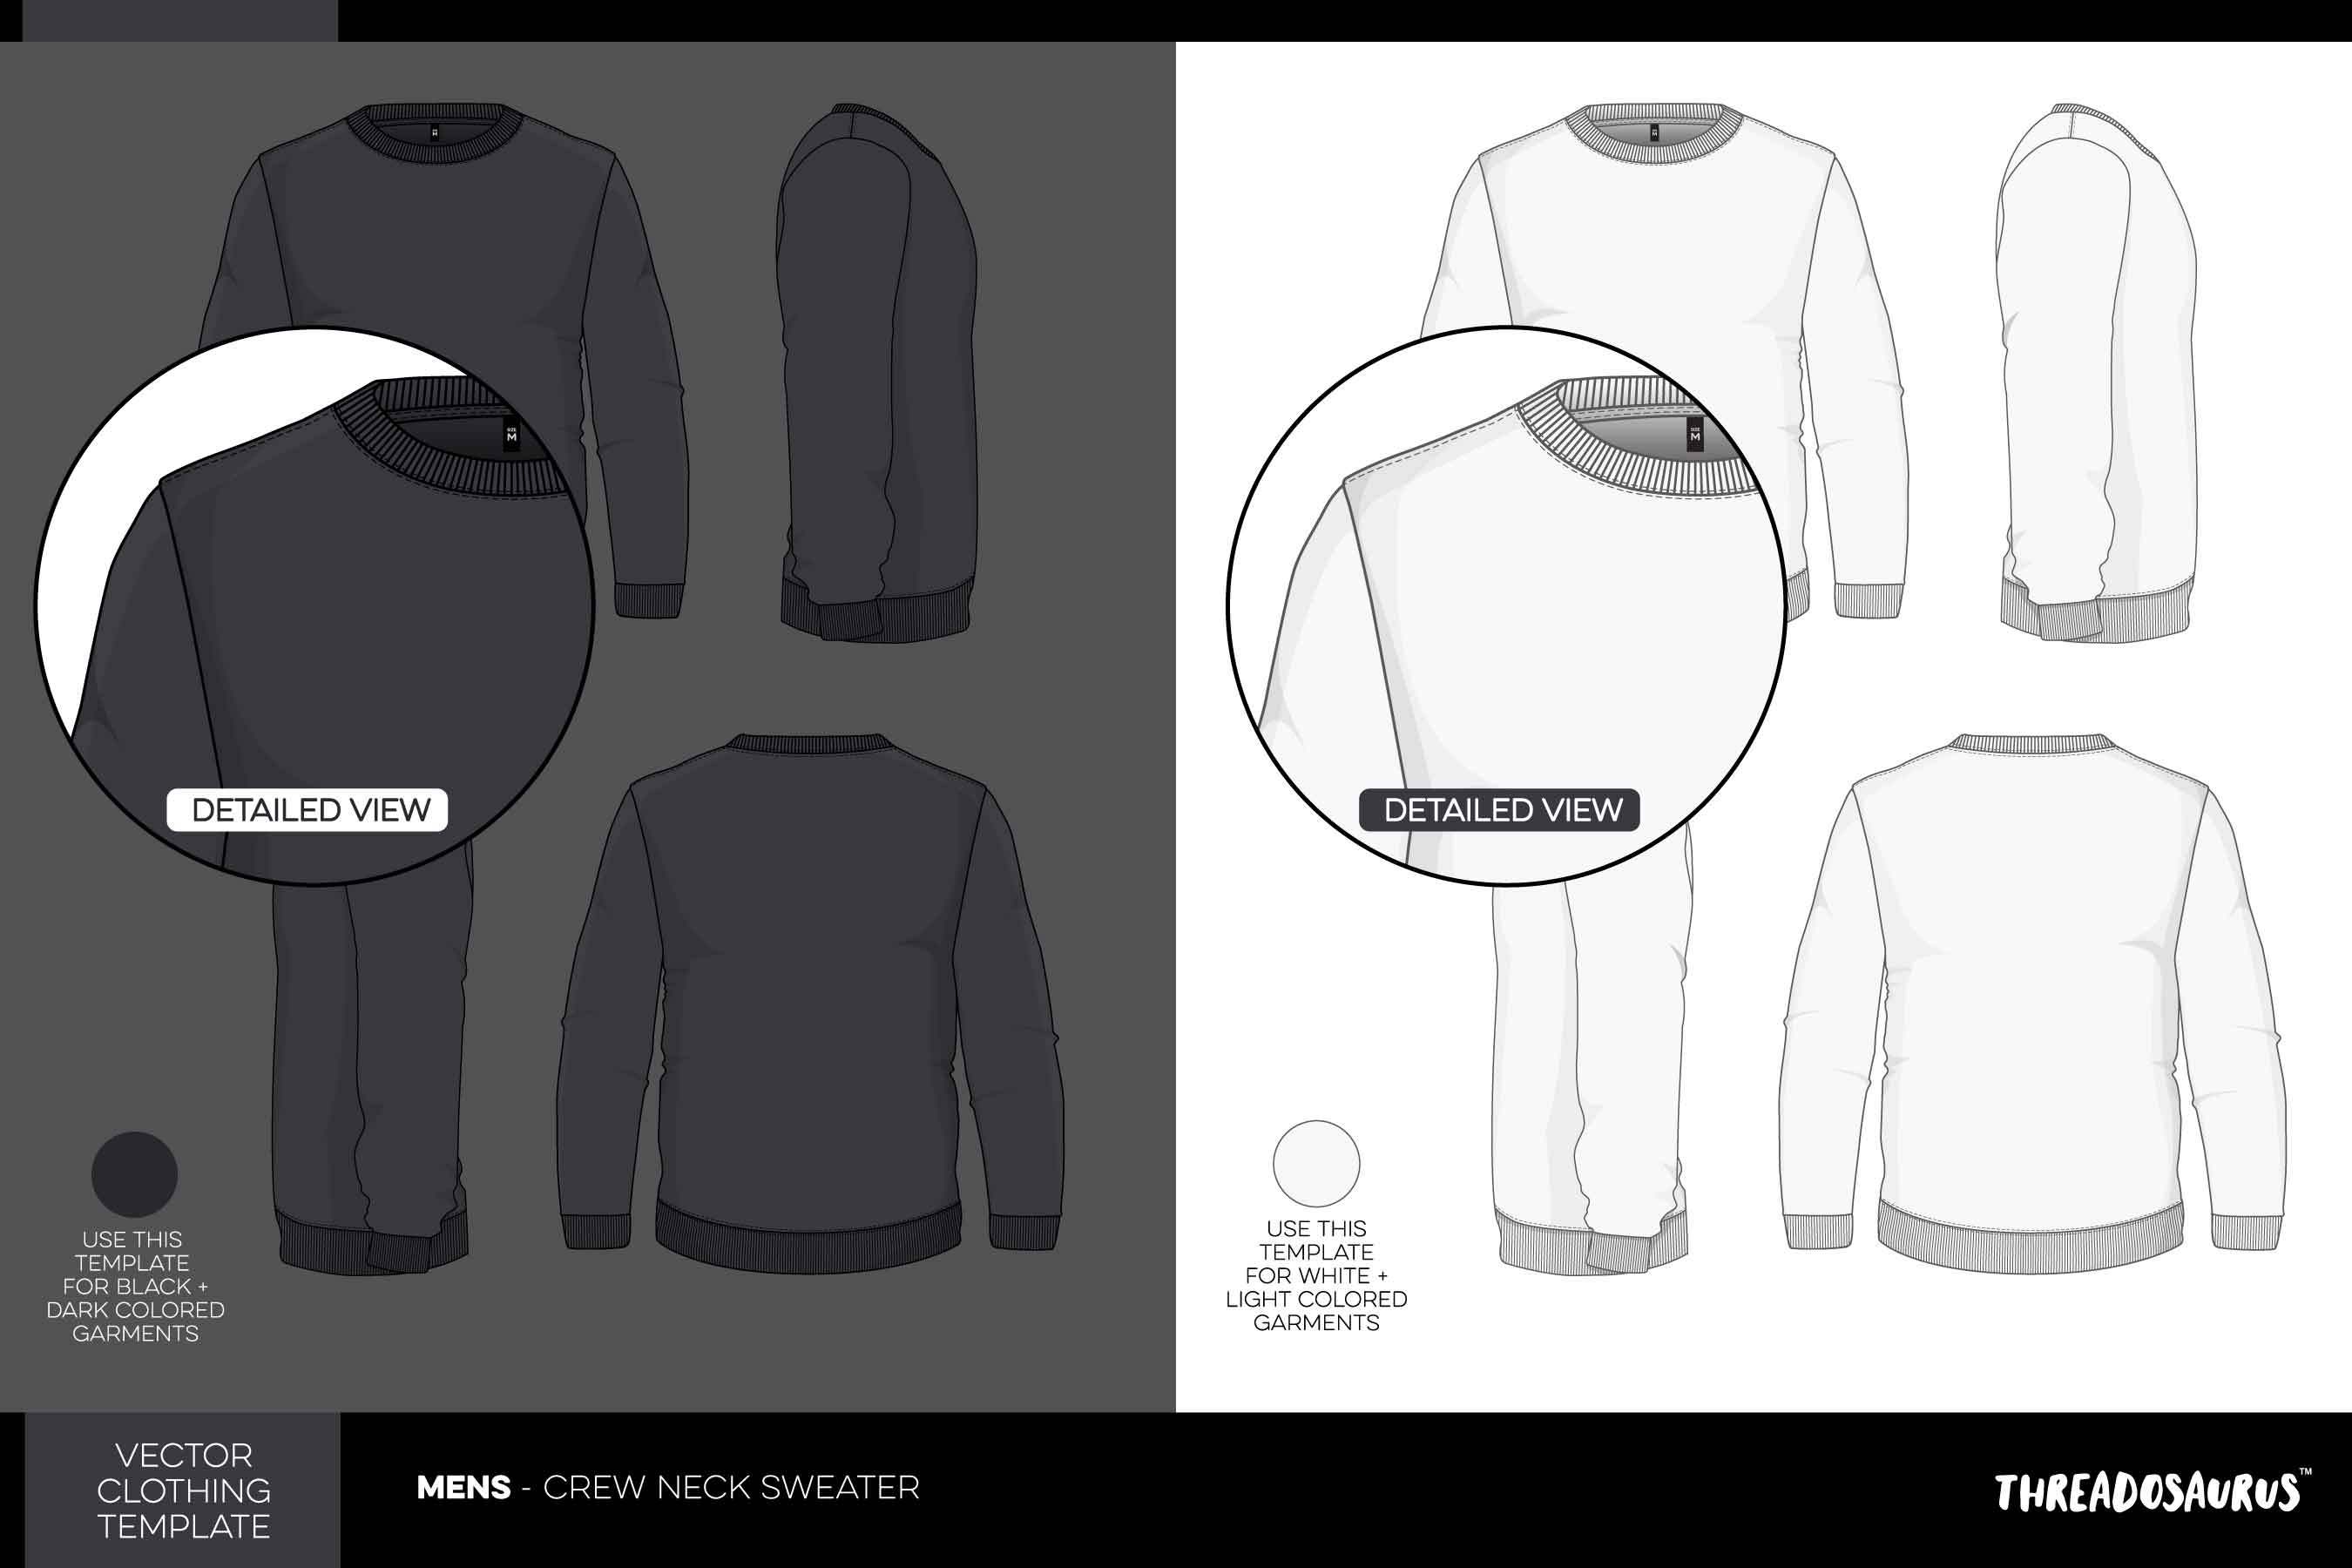 Mens Crew Neck Sweater Template - VECTOR Pack